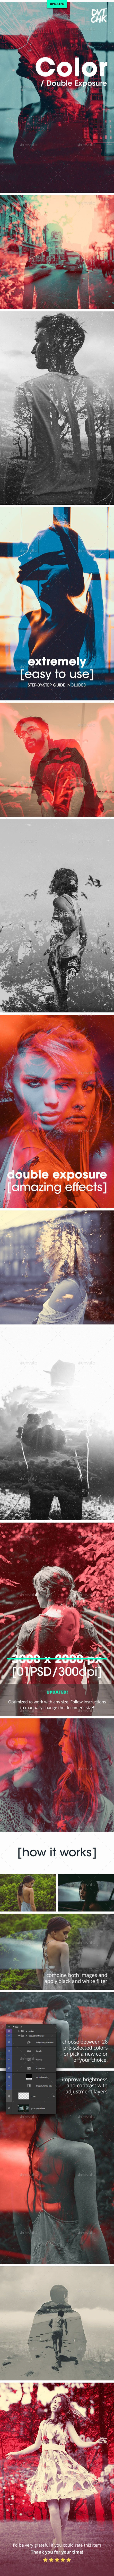 Color - Double Exposure Photoshop Photo Template | Photoshop ...